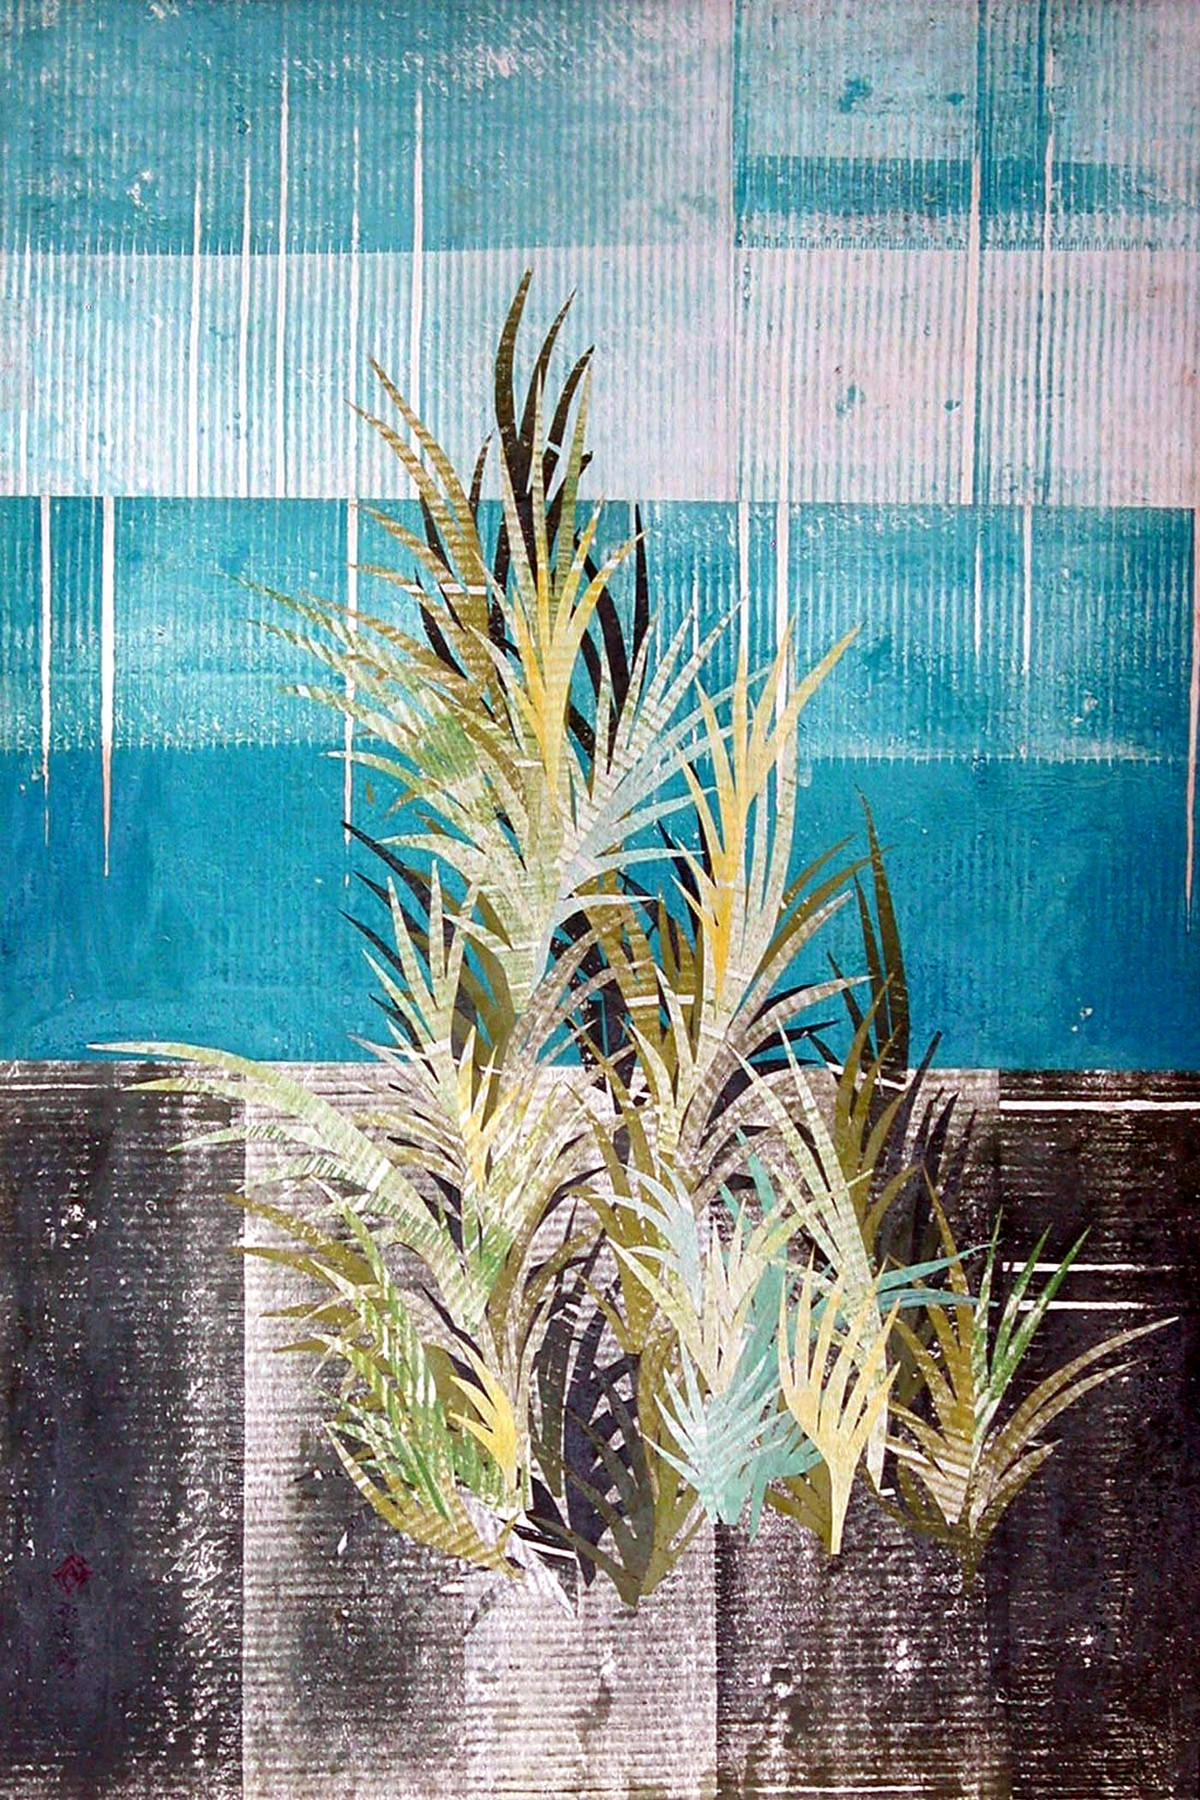 FOLIAGE by S.P.Verma, Expressionism Painting, Permanent Ink on Paper, Cyan color